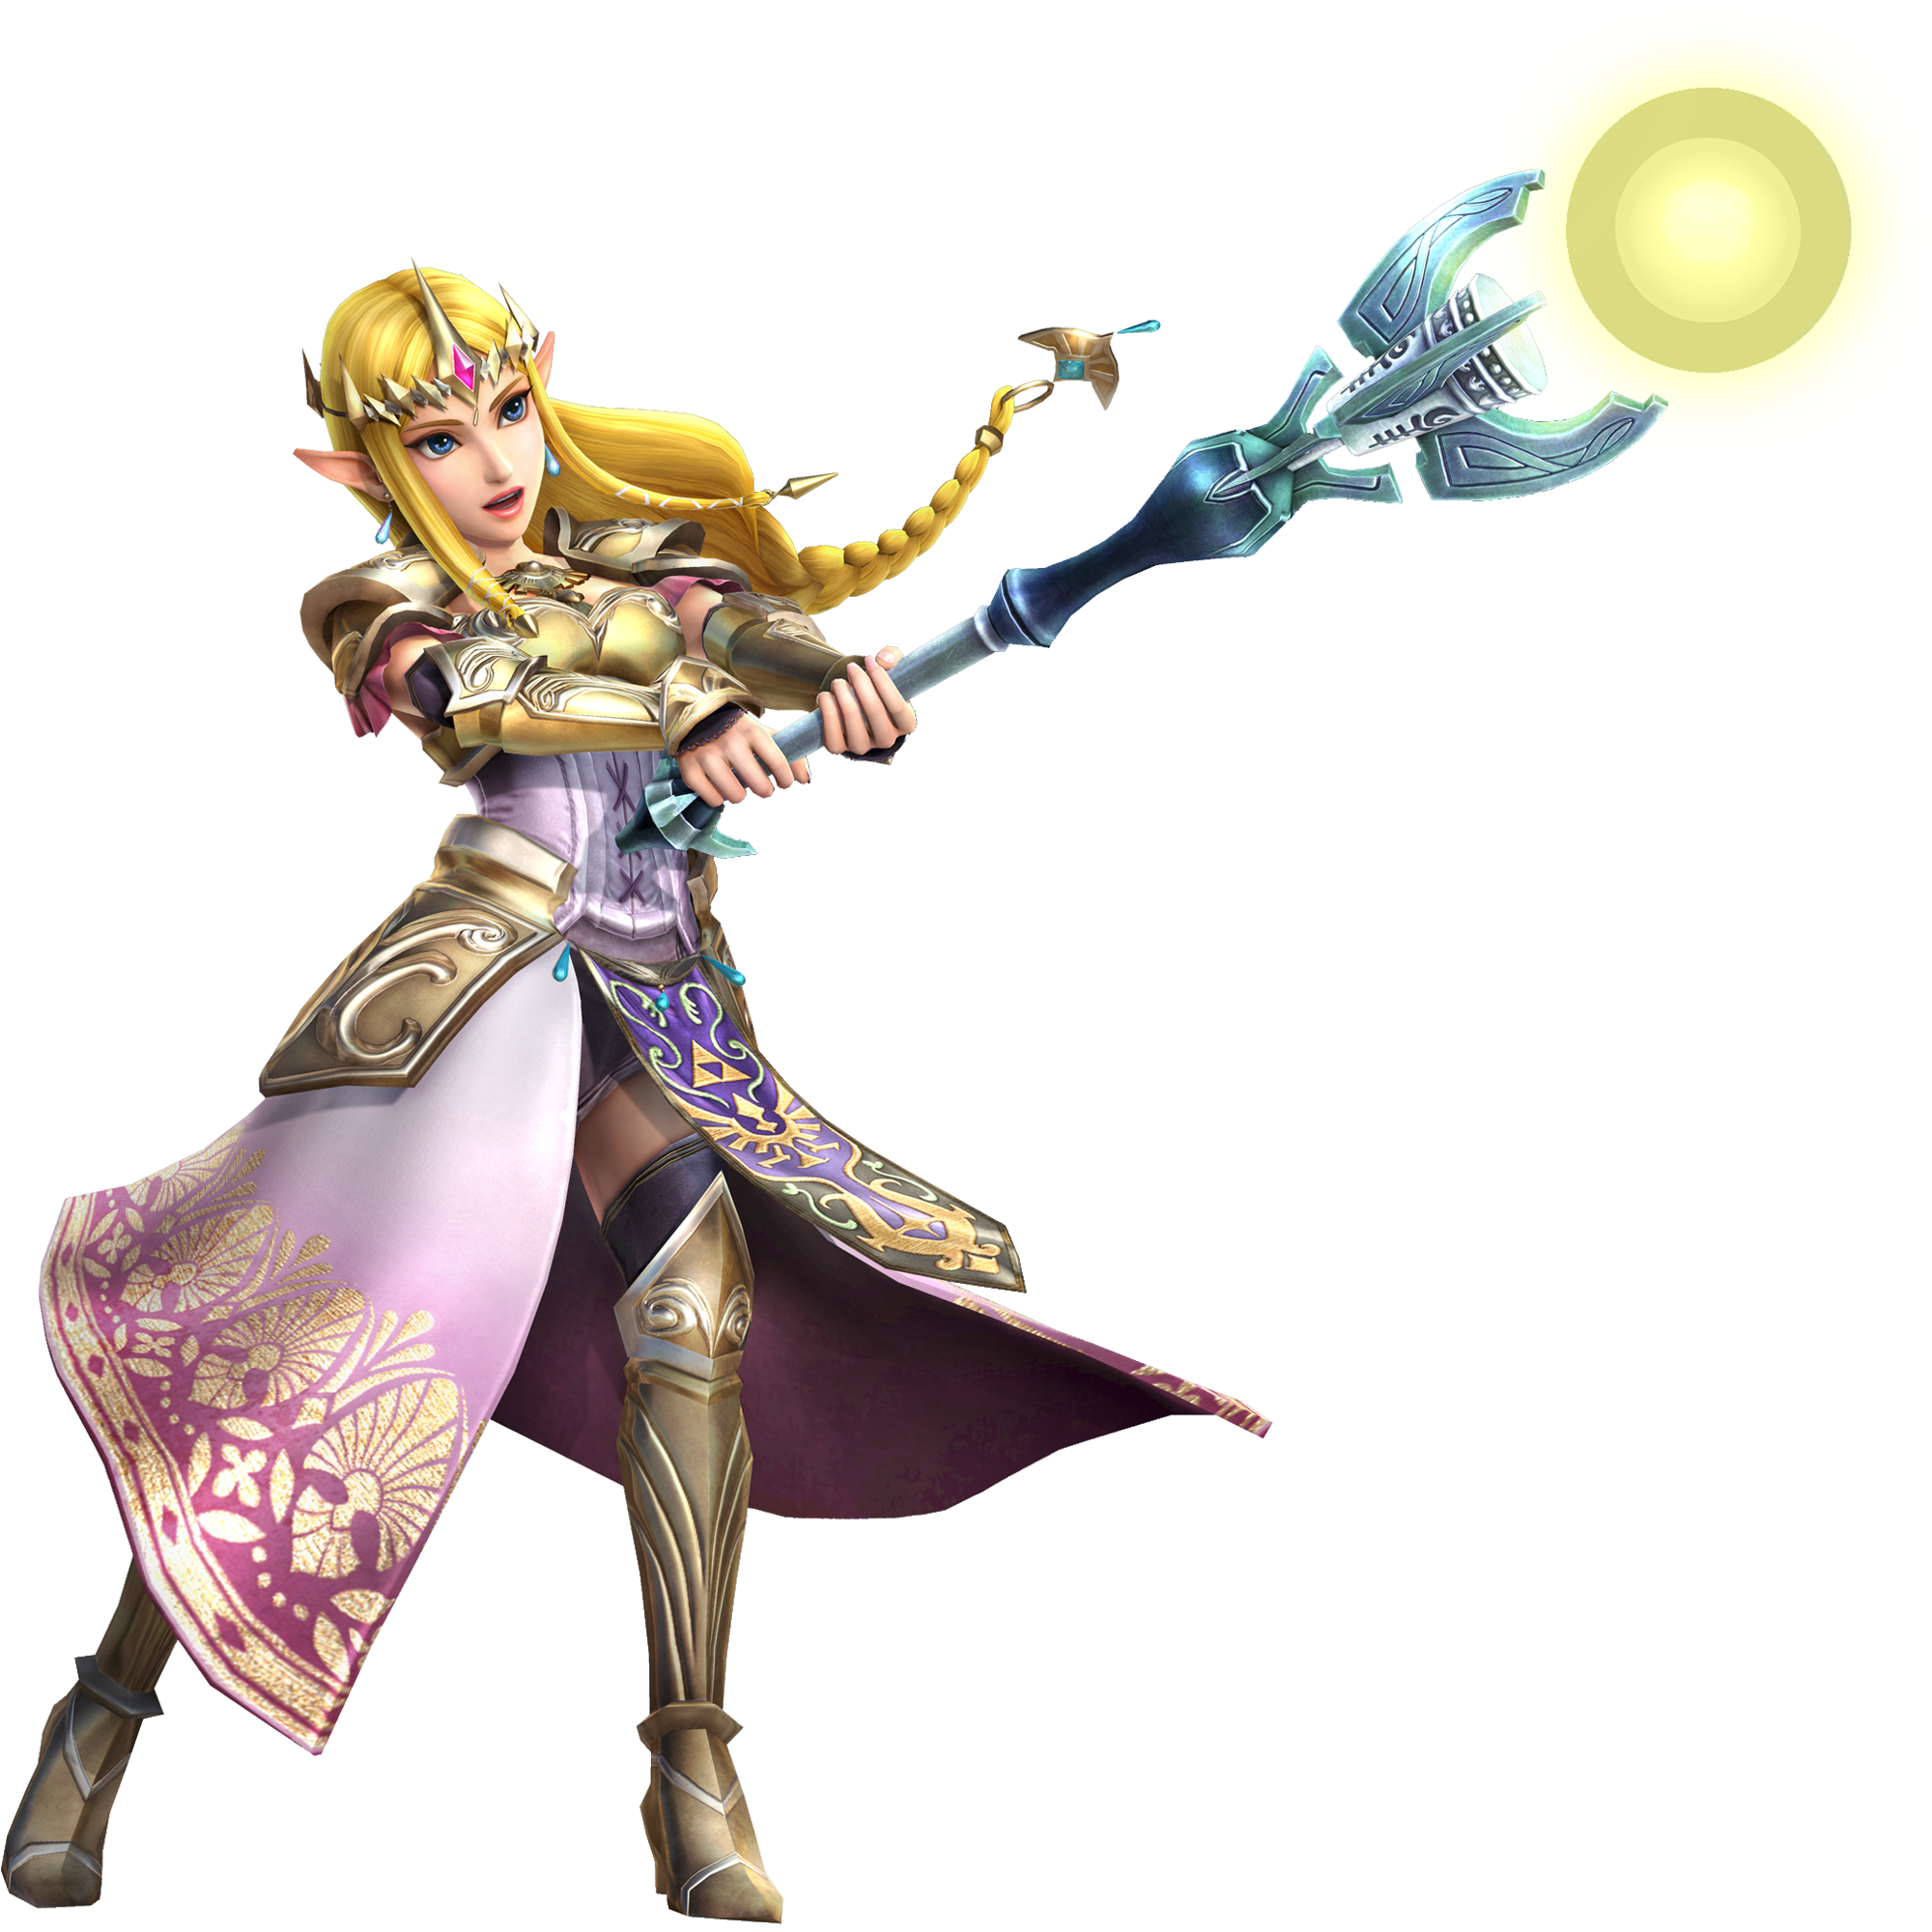 Transparent zelda background. Index of wiki images